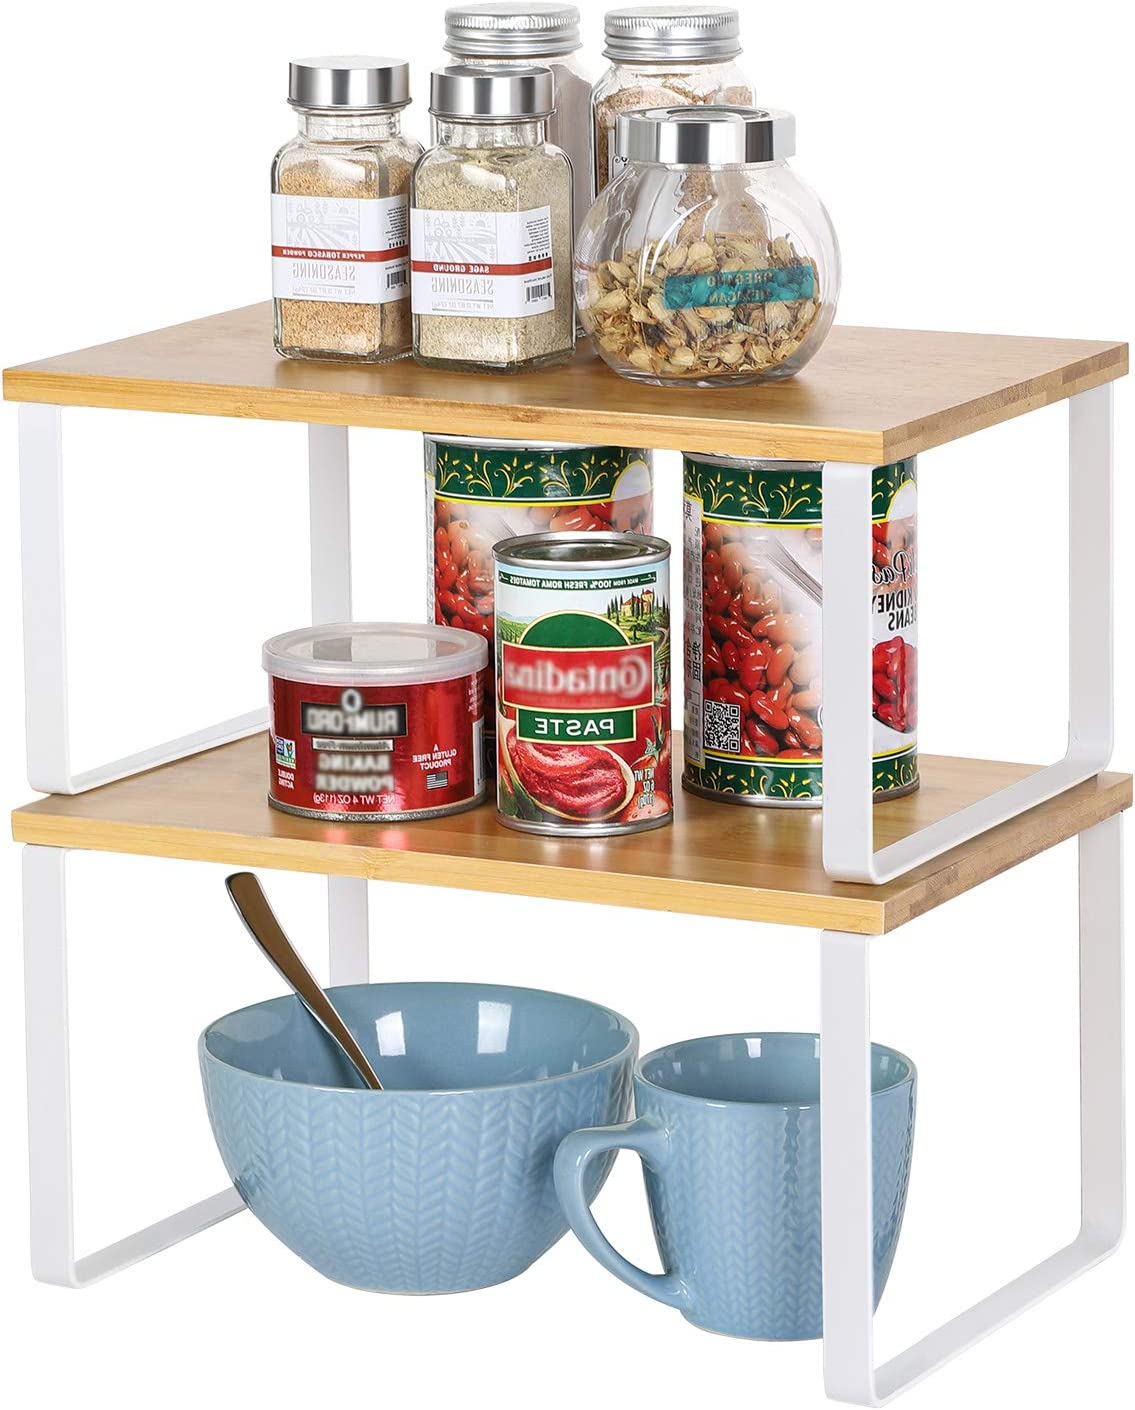 NEX Bamboo Kitchen Cabinet and Counter Shelf Organizer, Stackable & Expandable, White and Natural